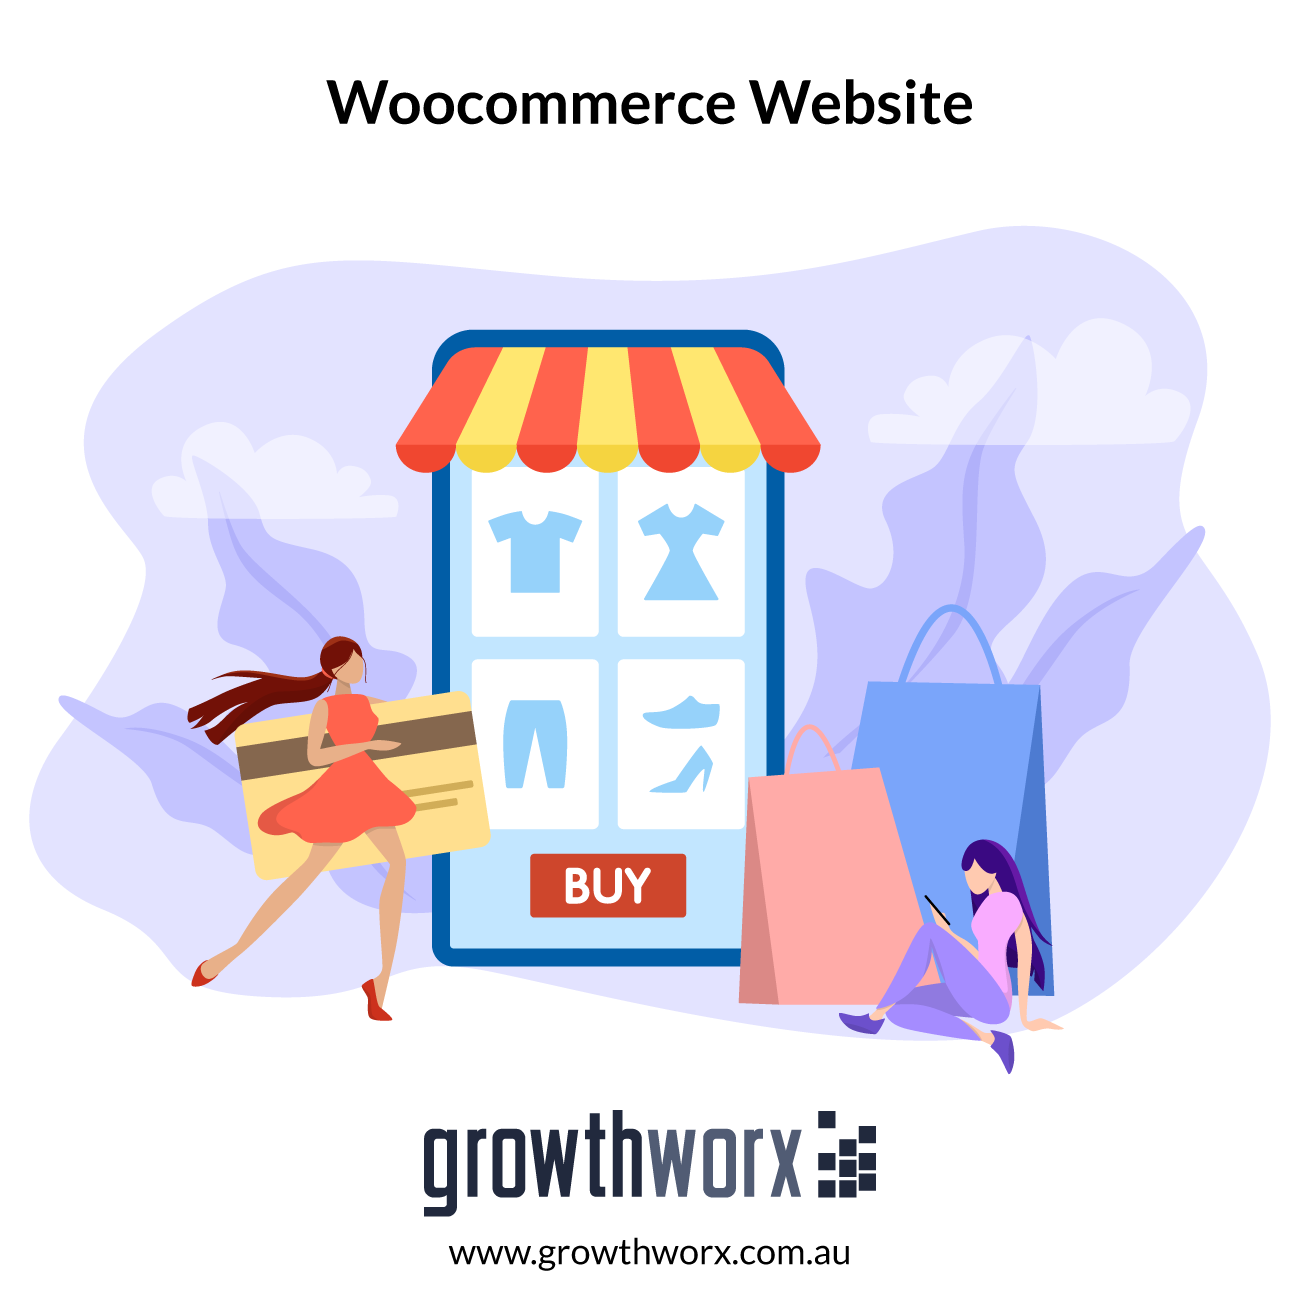 Upload 100 products with details into your Woocommerce website store 1